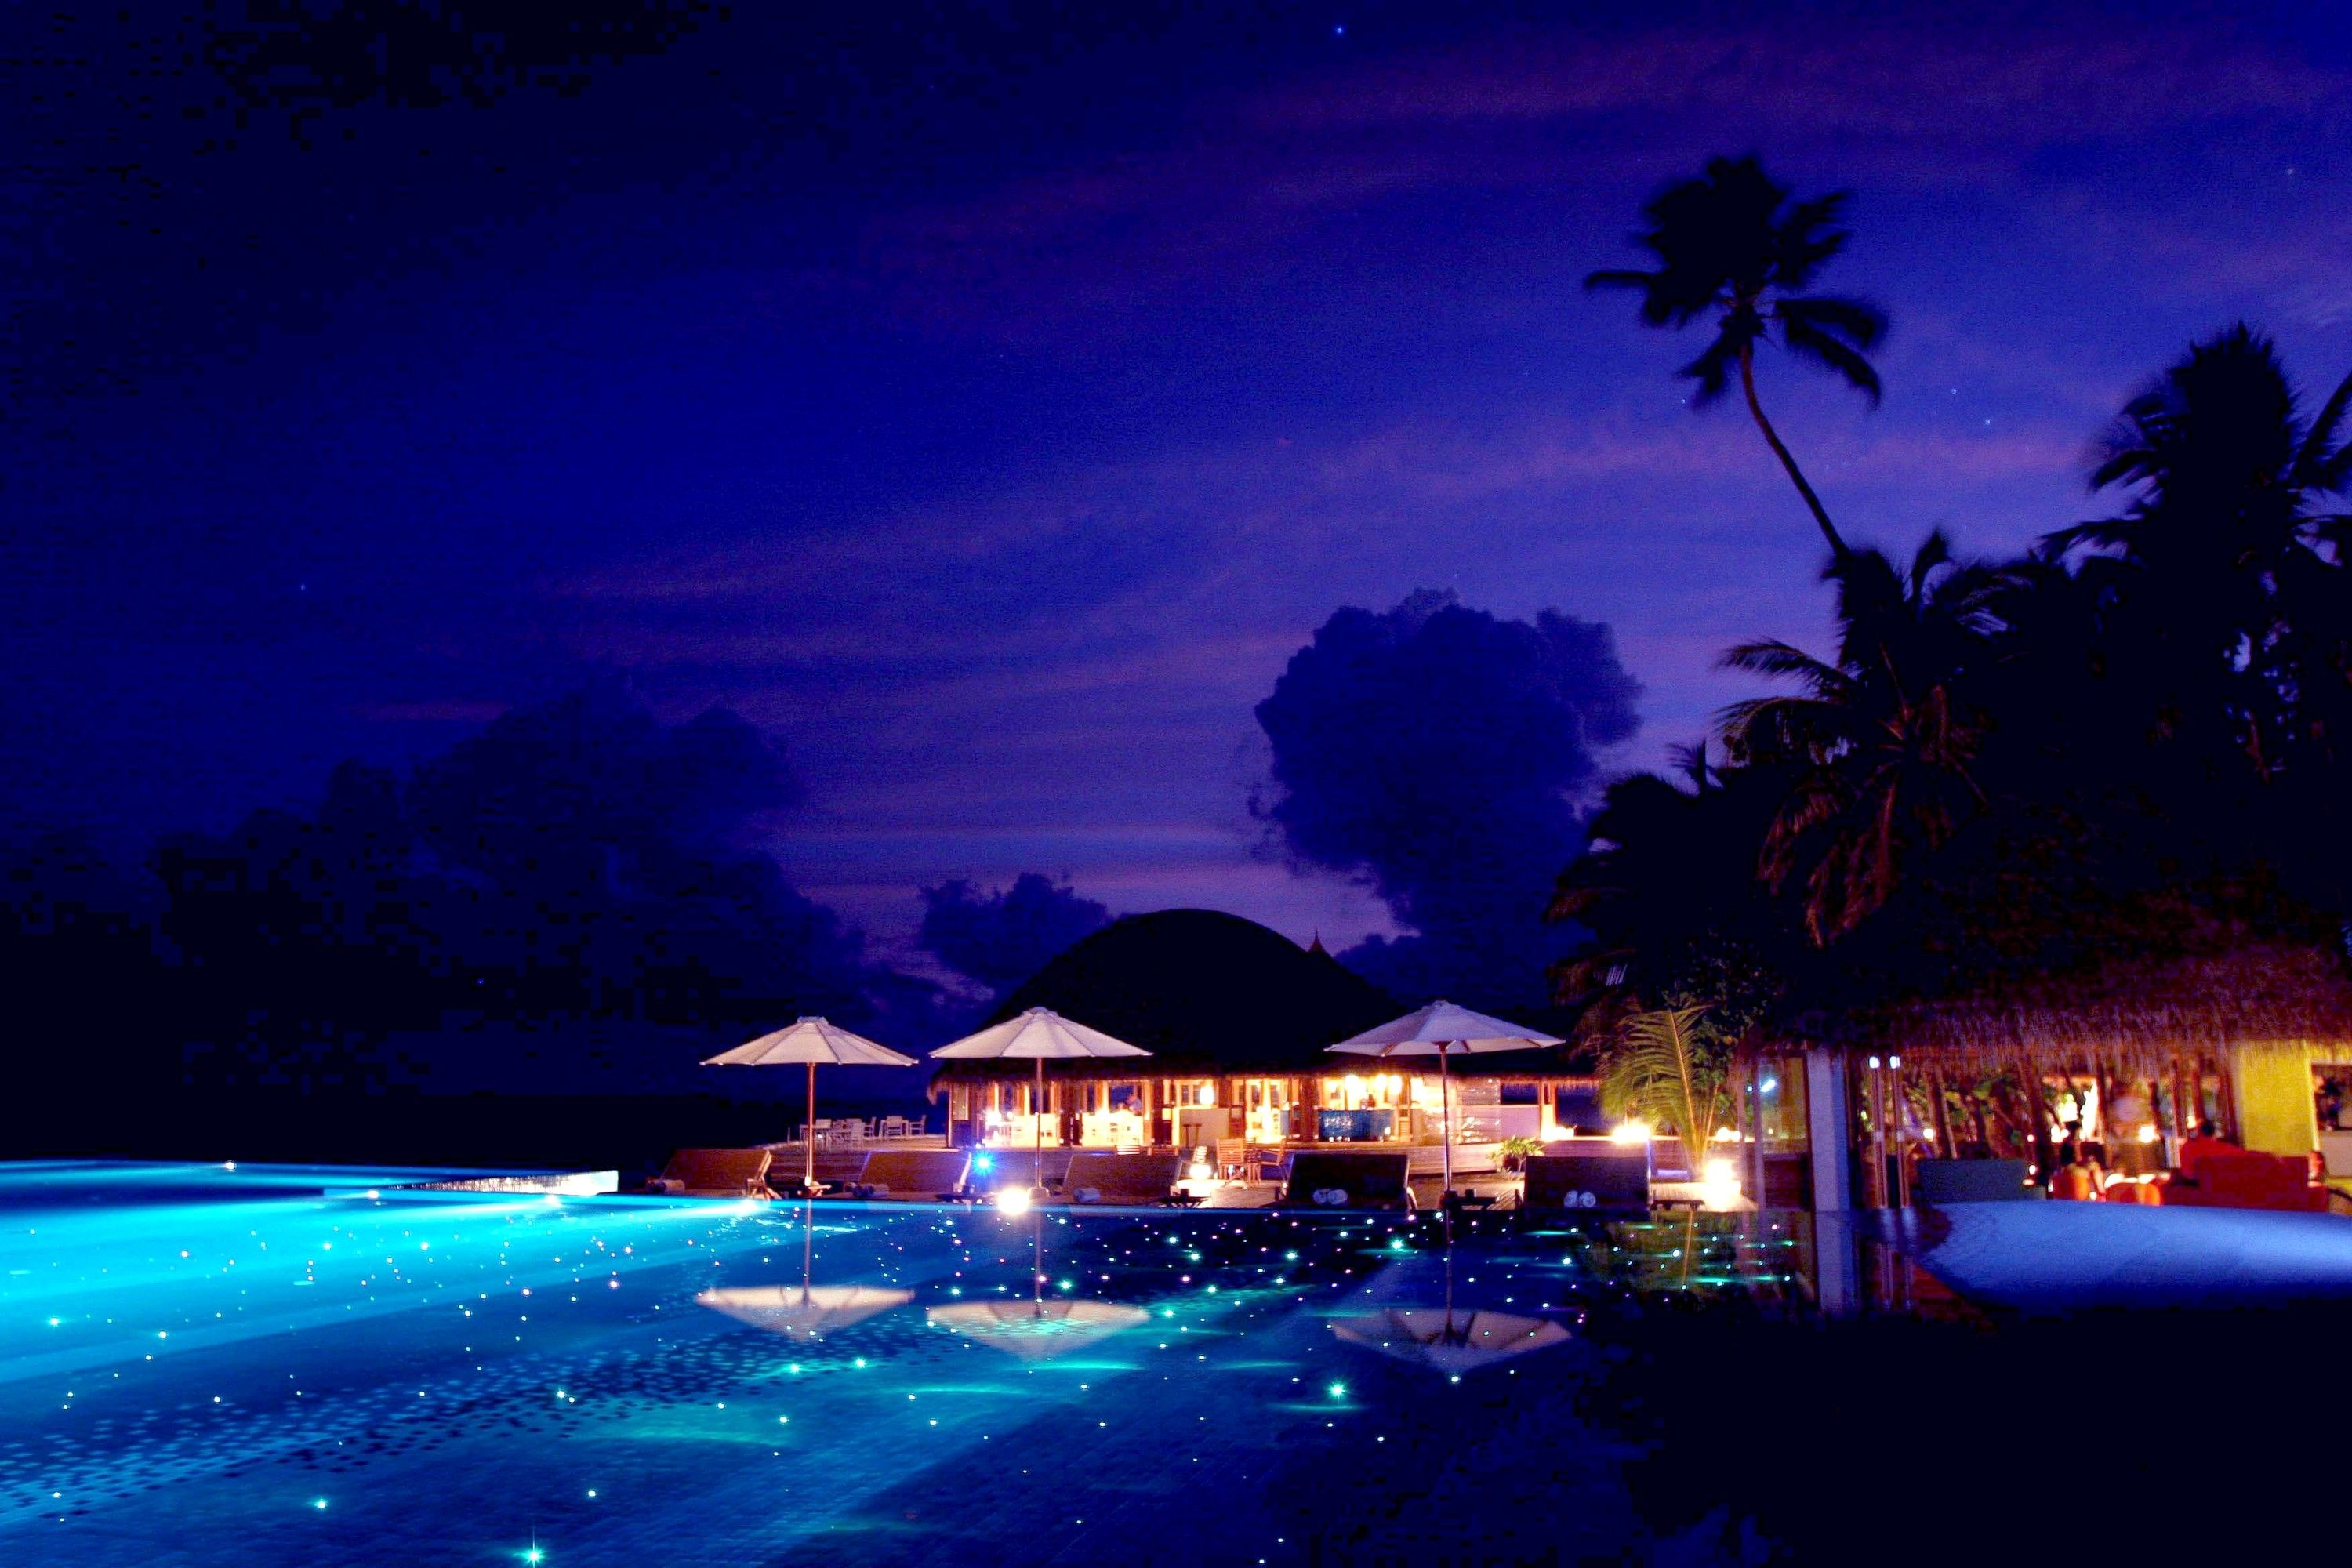 Beach at Night Wallpapers - Top Free Beach at Night ...